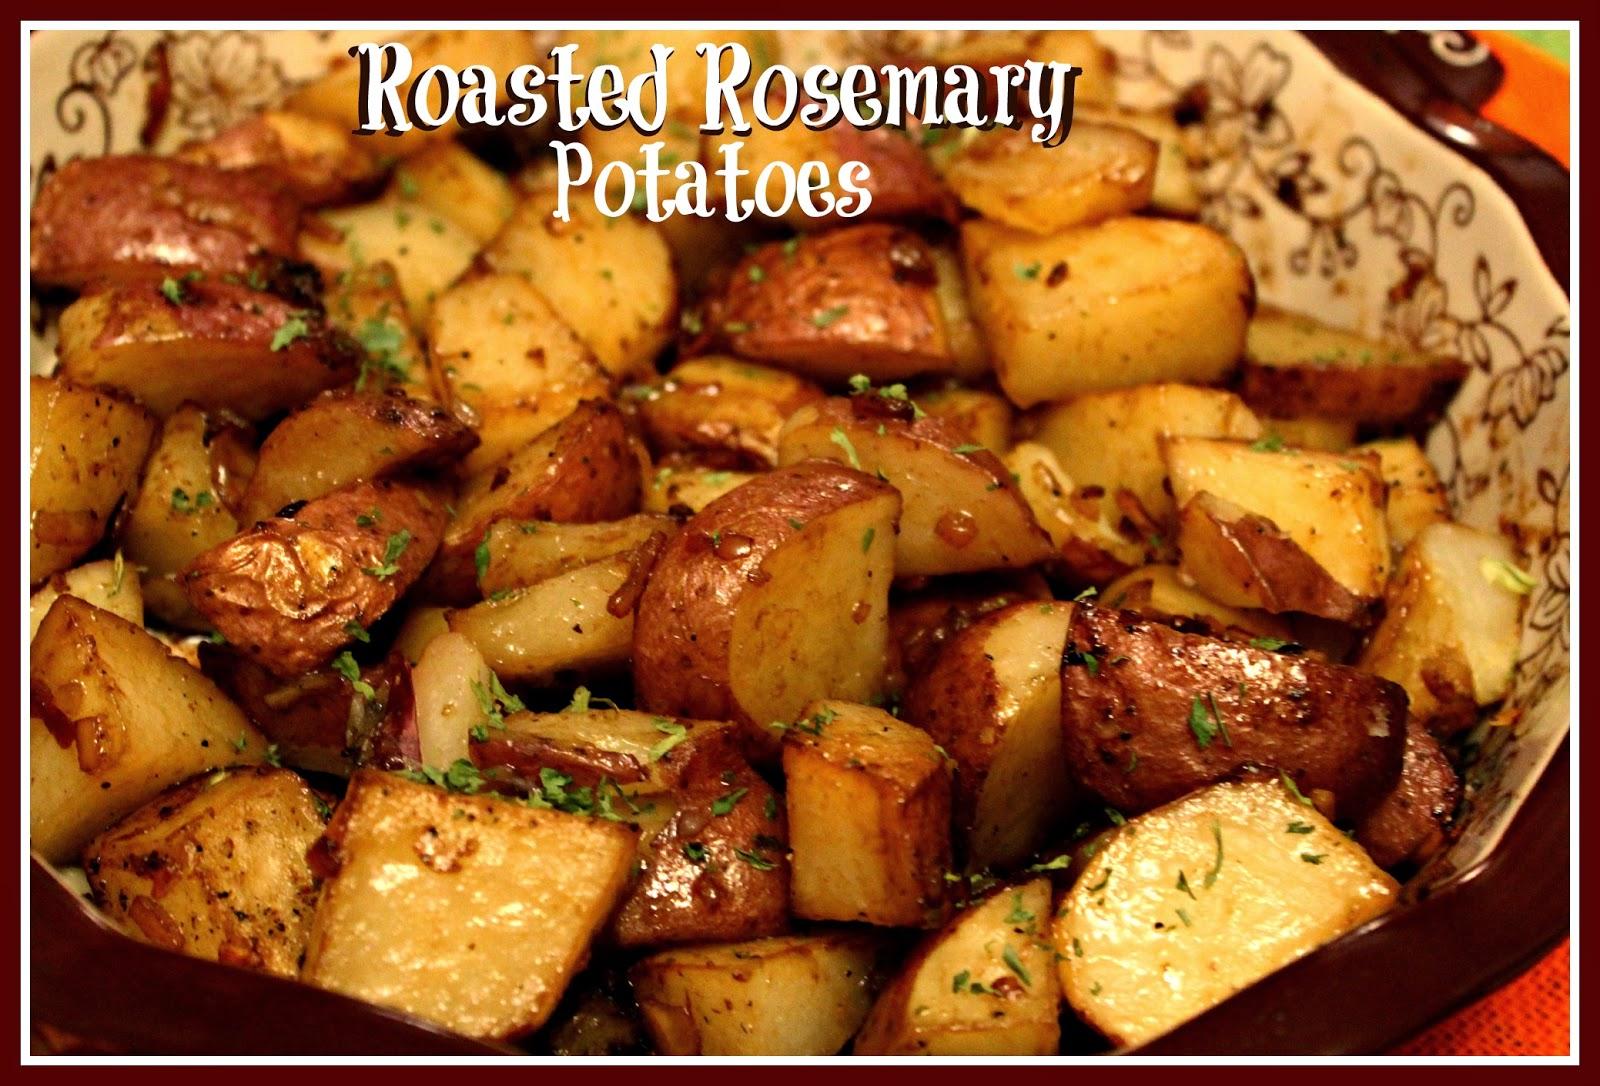 Roasted Garlic Soup With Rosemary Roasted Potatoes Recipe — Dishmaps